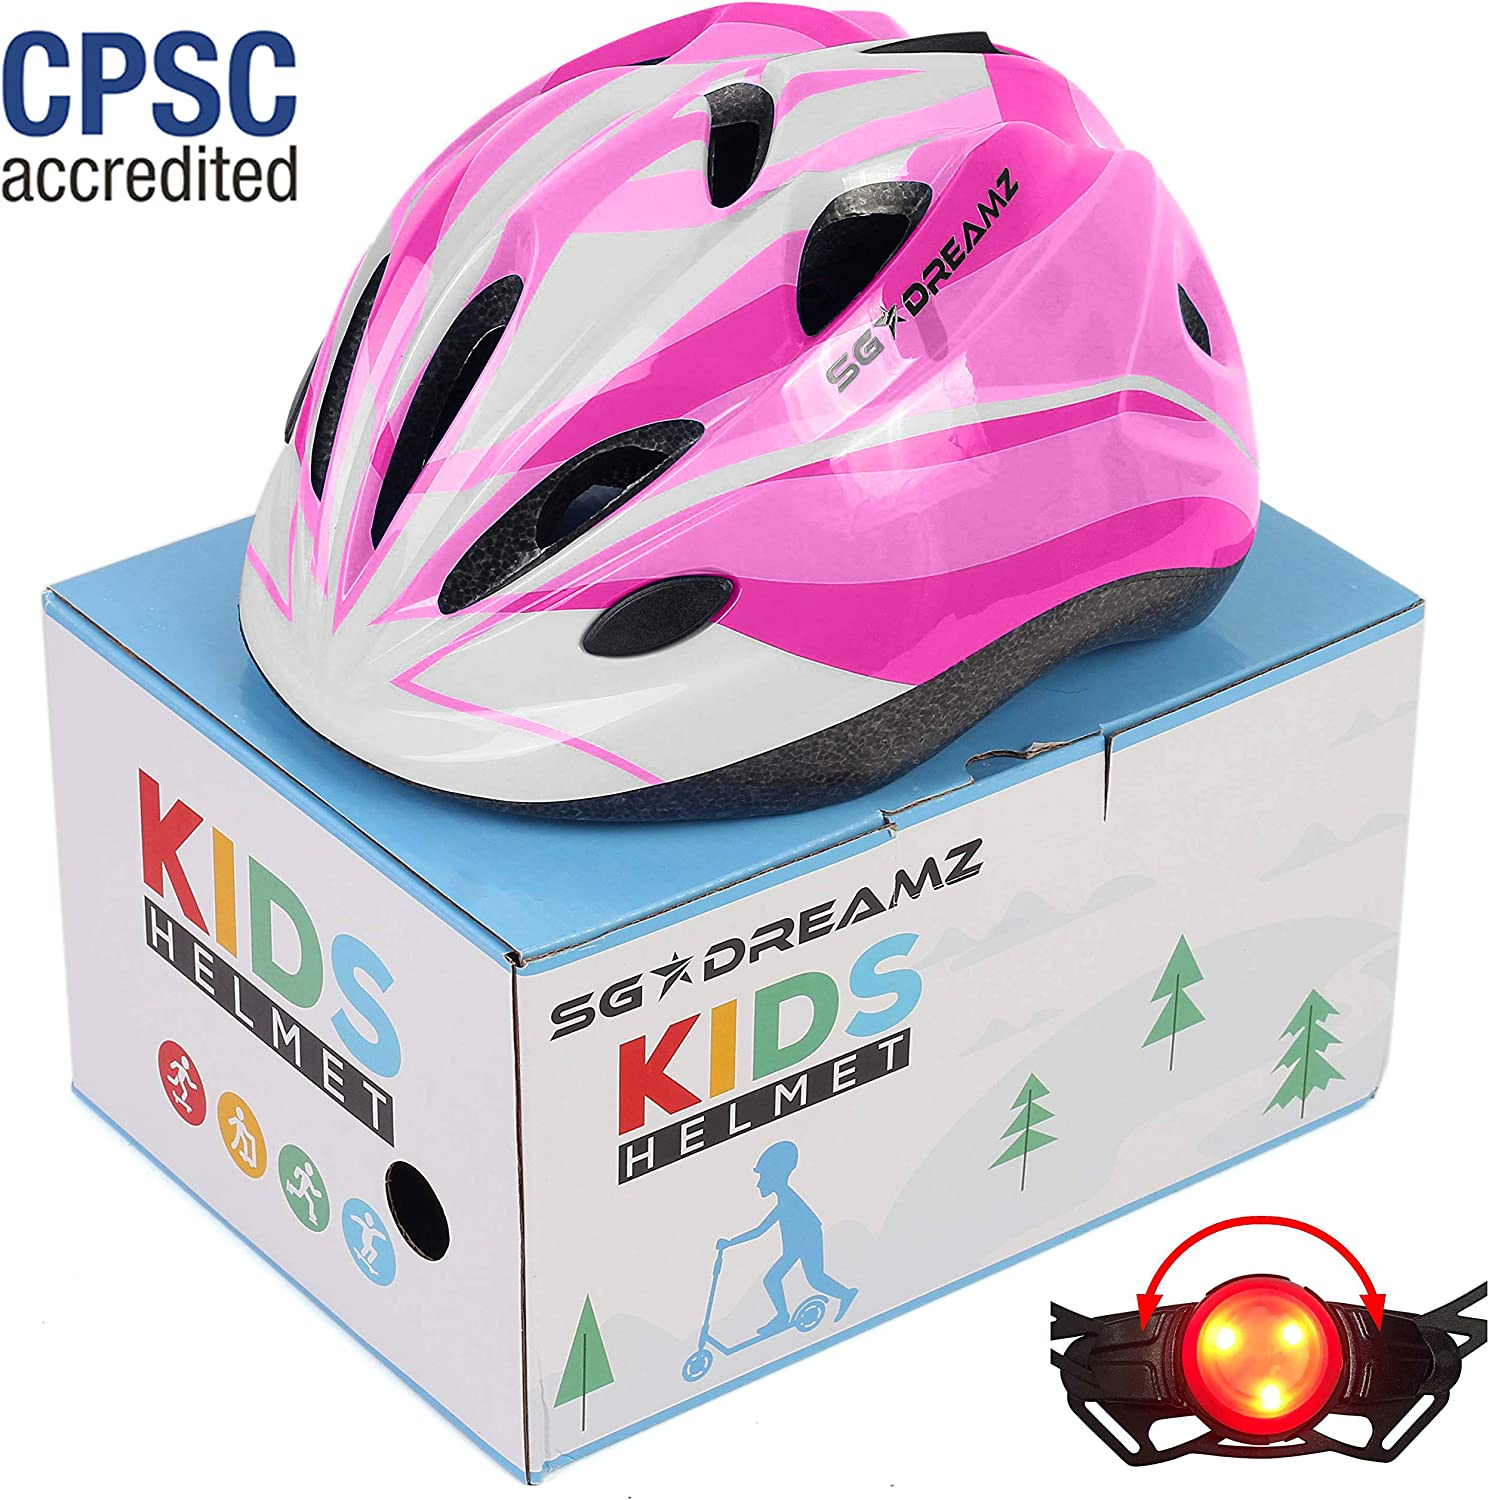 Kids Helmet – Adjustable from Toddler to Youth Size, Ages 3 to 7 - Comes in Great Looking Package Perfect for Gift - Multi-Sports with LED Safety Light - CSPC Certified for Safety